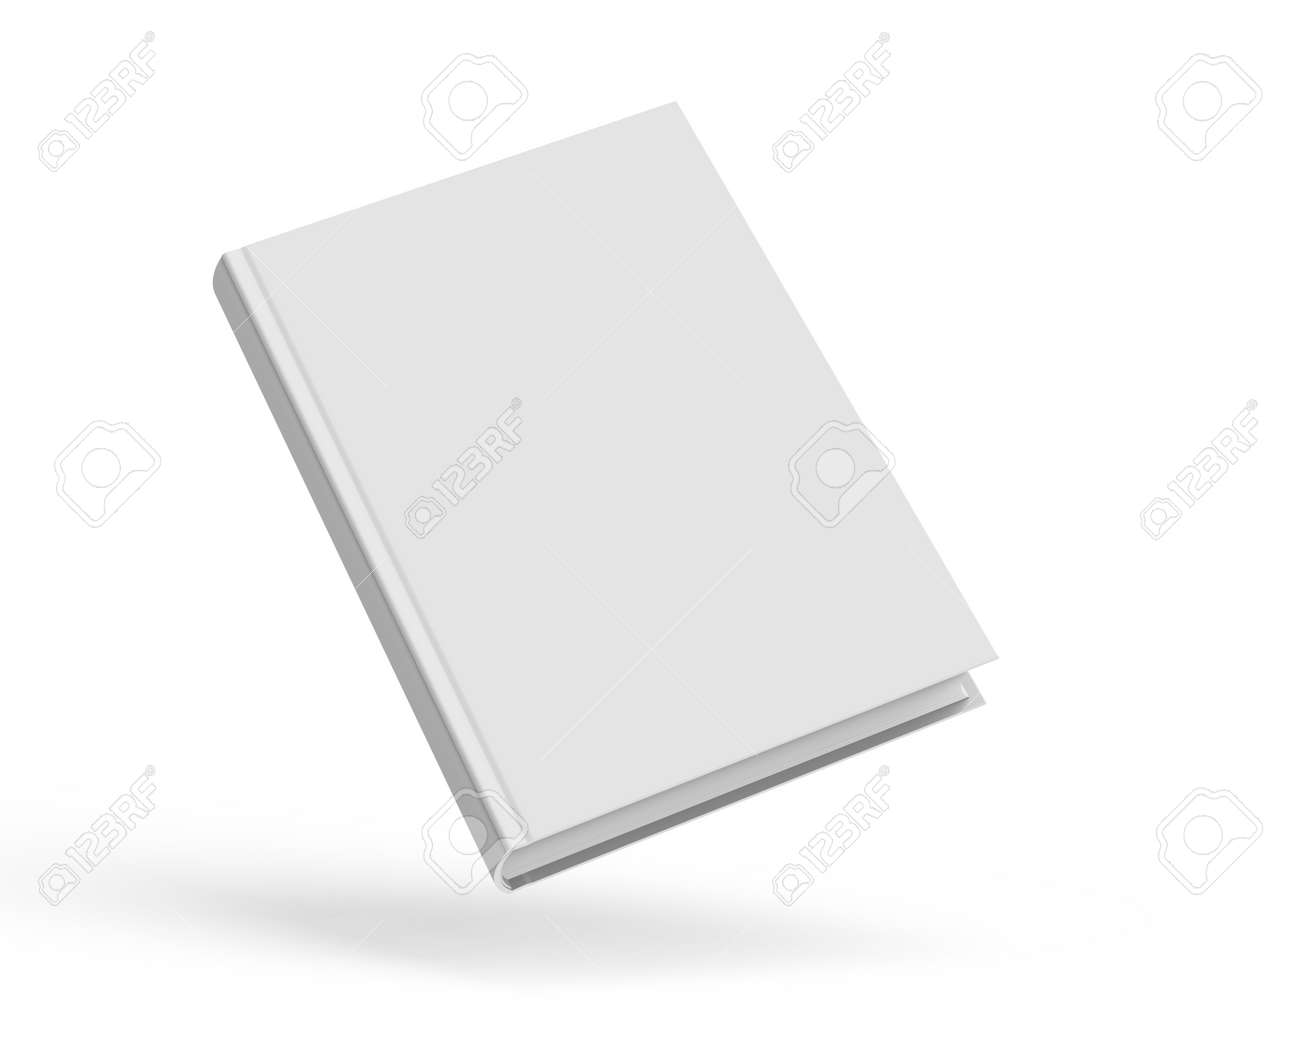 Blank Hard Cover Book Template, Blank Book Cover Floating In.. Stock ...